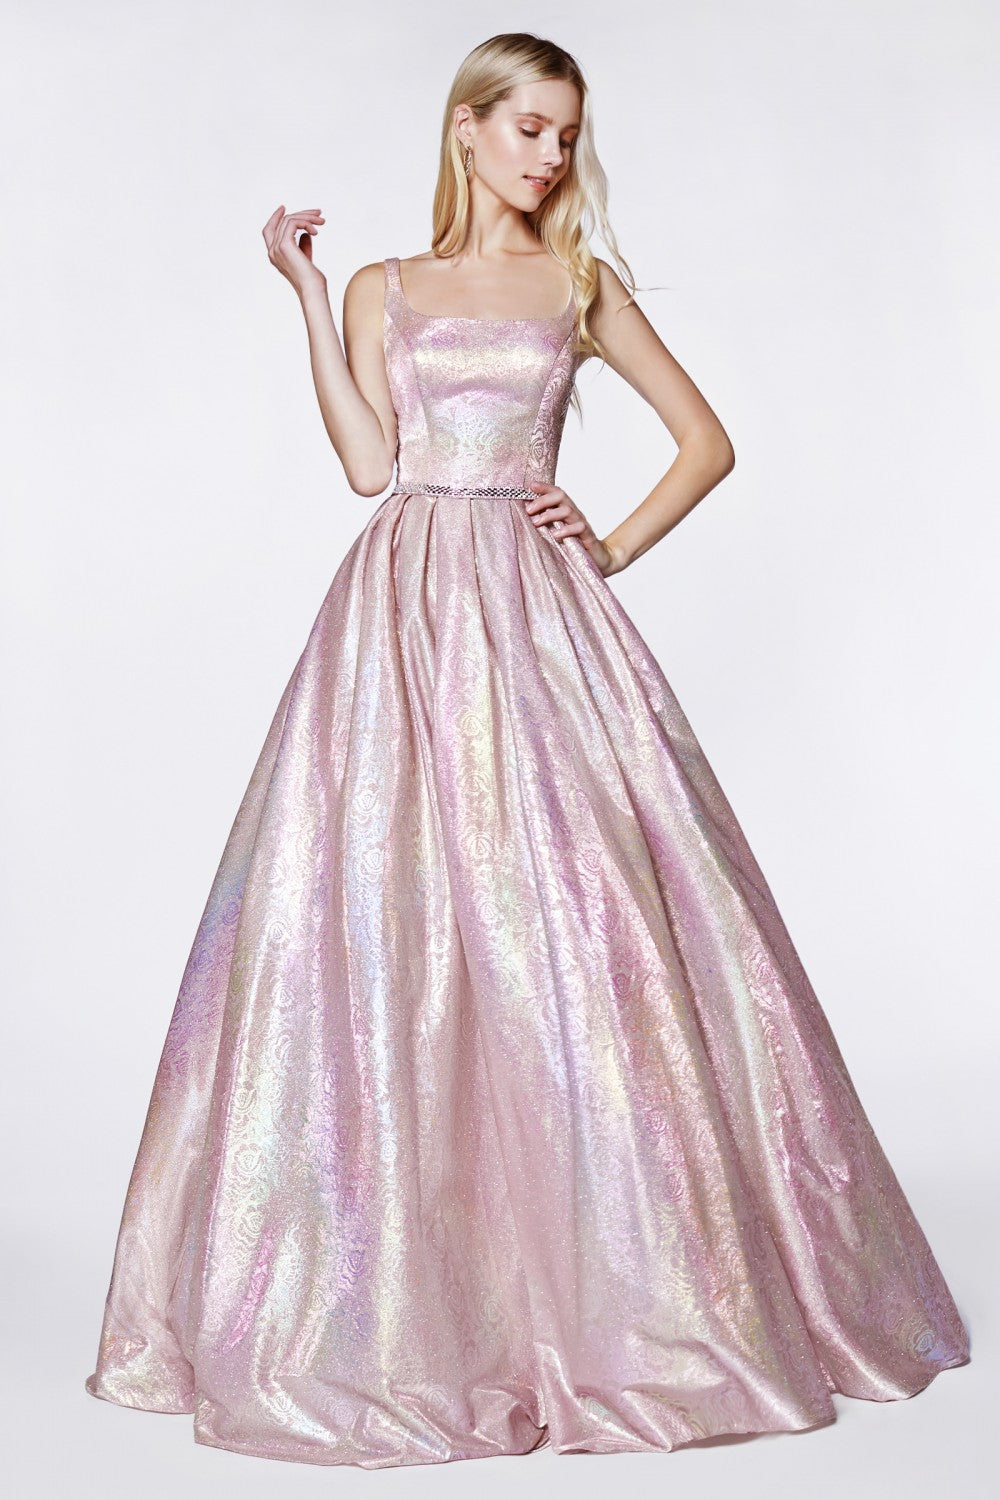 32291804fe478 CD KC 880 - Metallic holograohic floral ball gown with illusion sides and  pockets